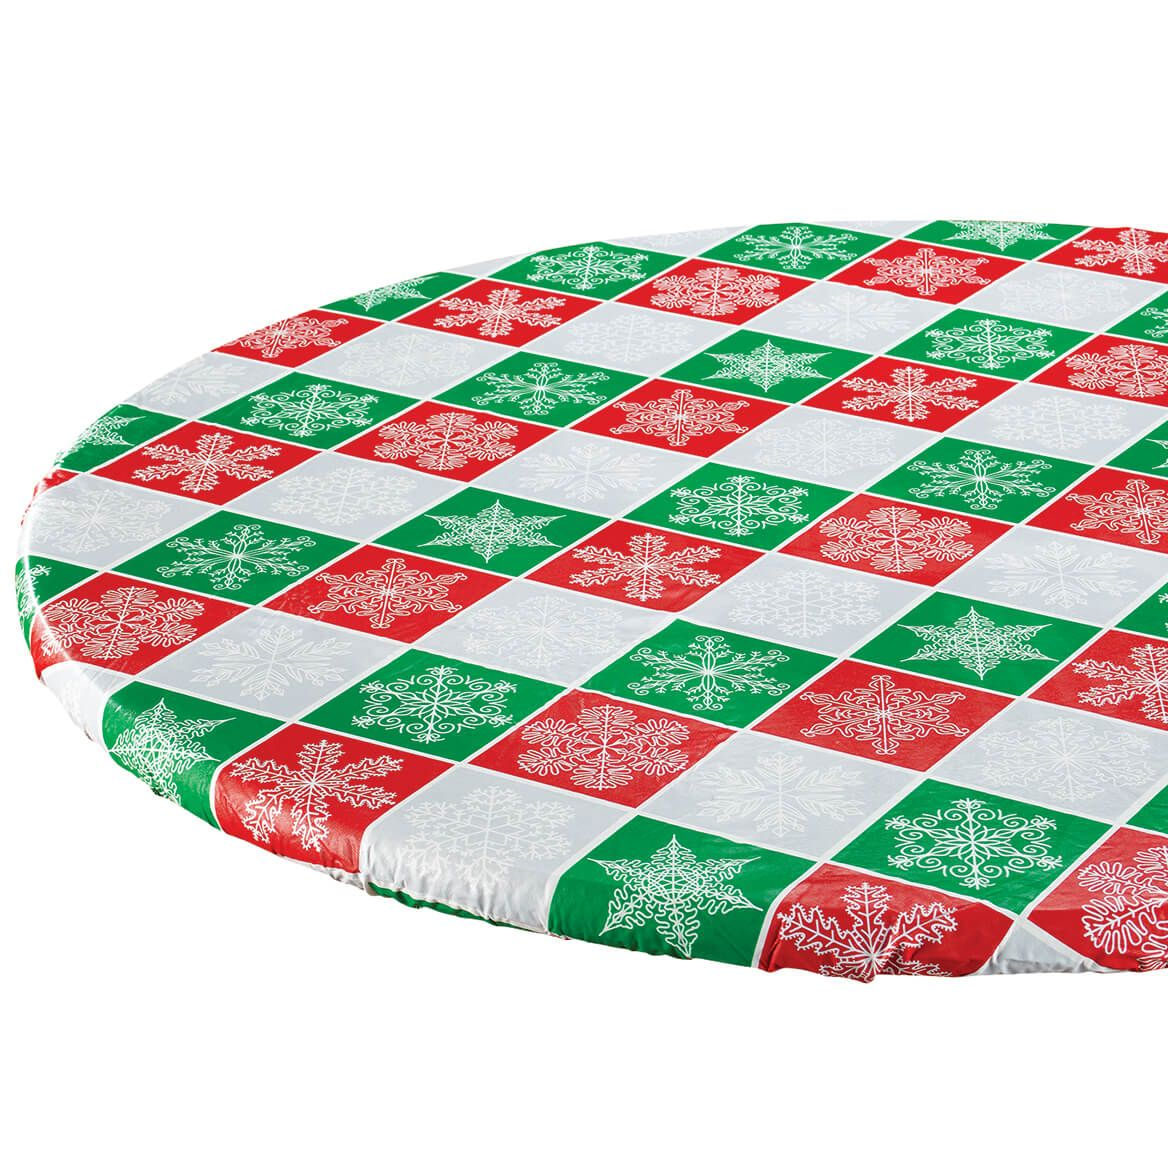 Snowflake Plaid Elasticized Table Cover by Chef's Pride™-372389